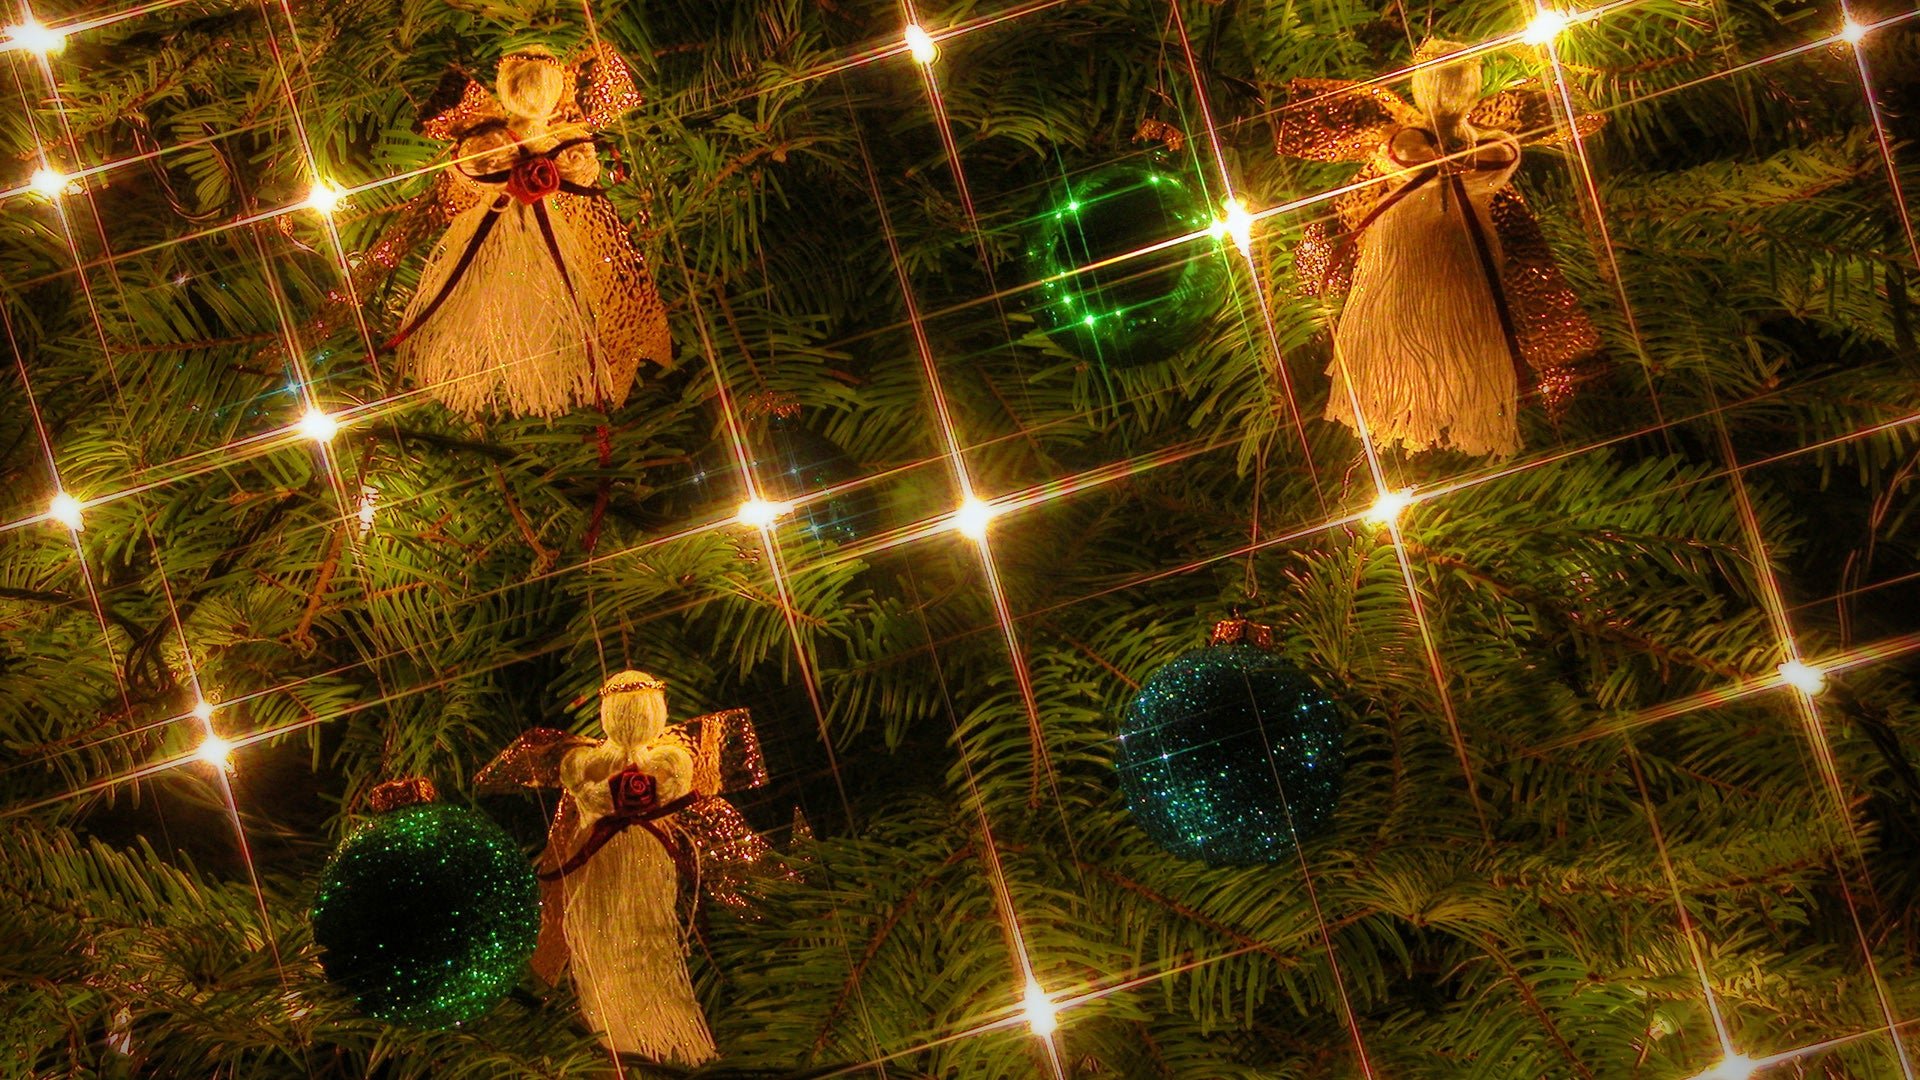 free, christmas, easyworship, backgrounds, tree, angels, ordements, lights